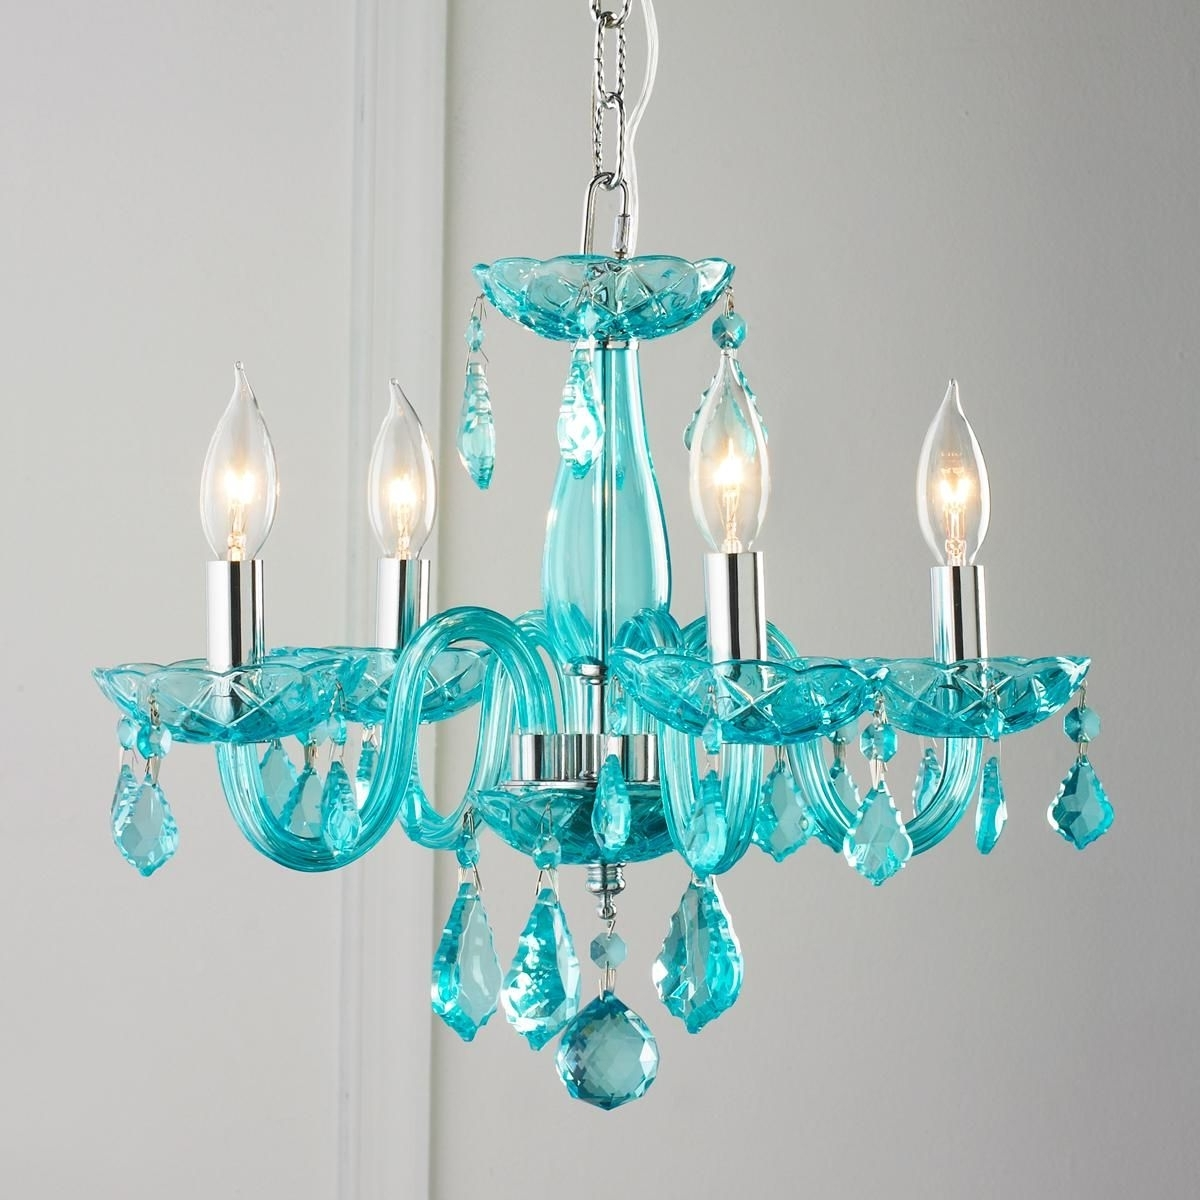 Mini Chandelier, Ceiling Canopy And Regarding Turquoise Chandelier Crystals (View 3 of 20)